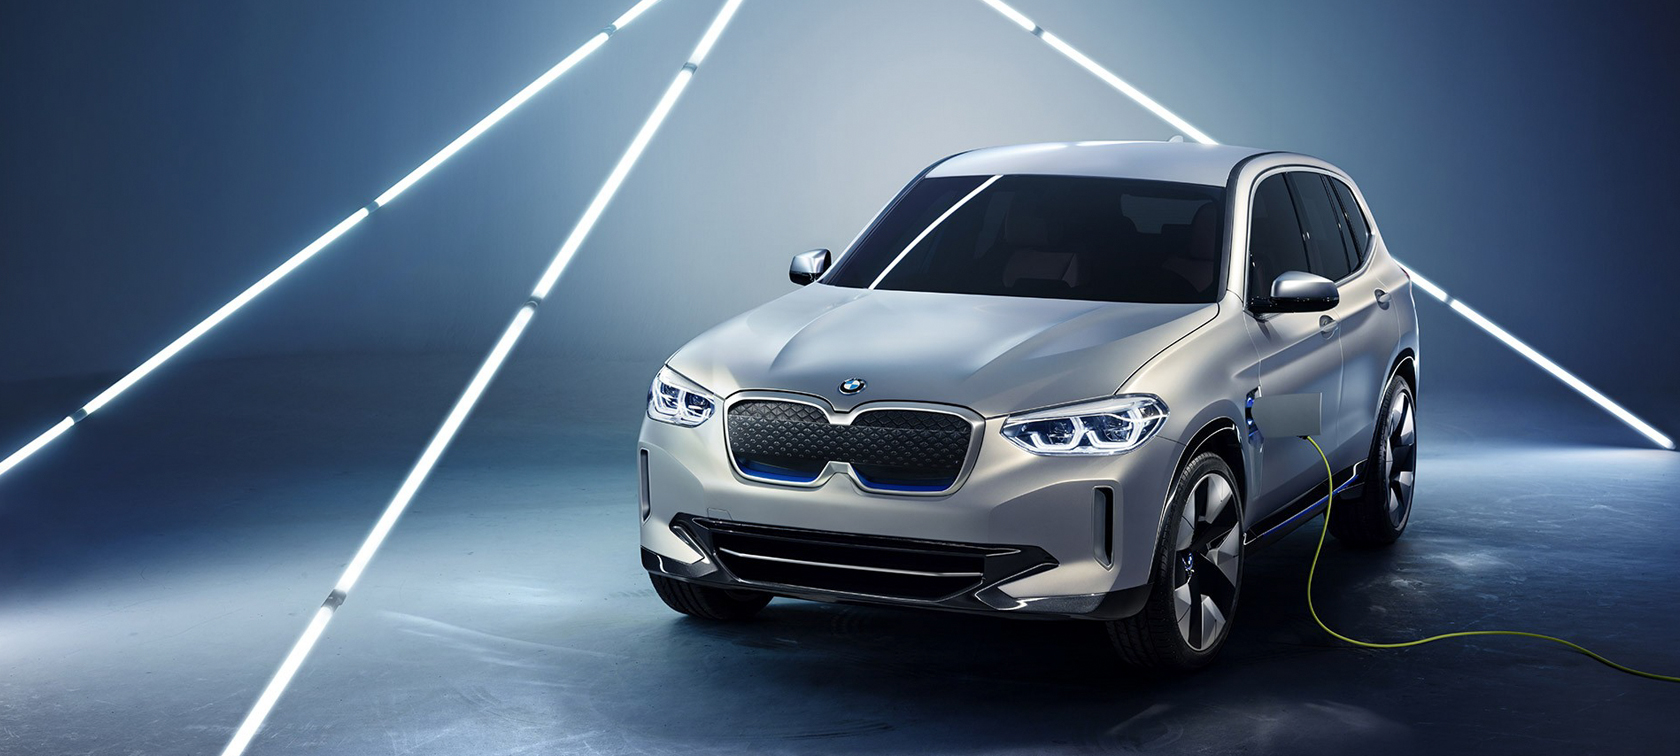 THE ALL ELECTRIC BMW CONCEPT iX3.